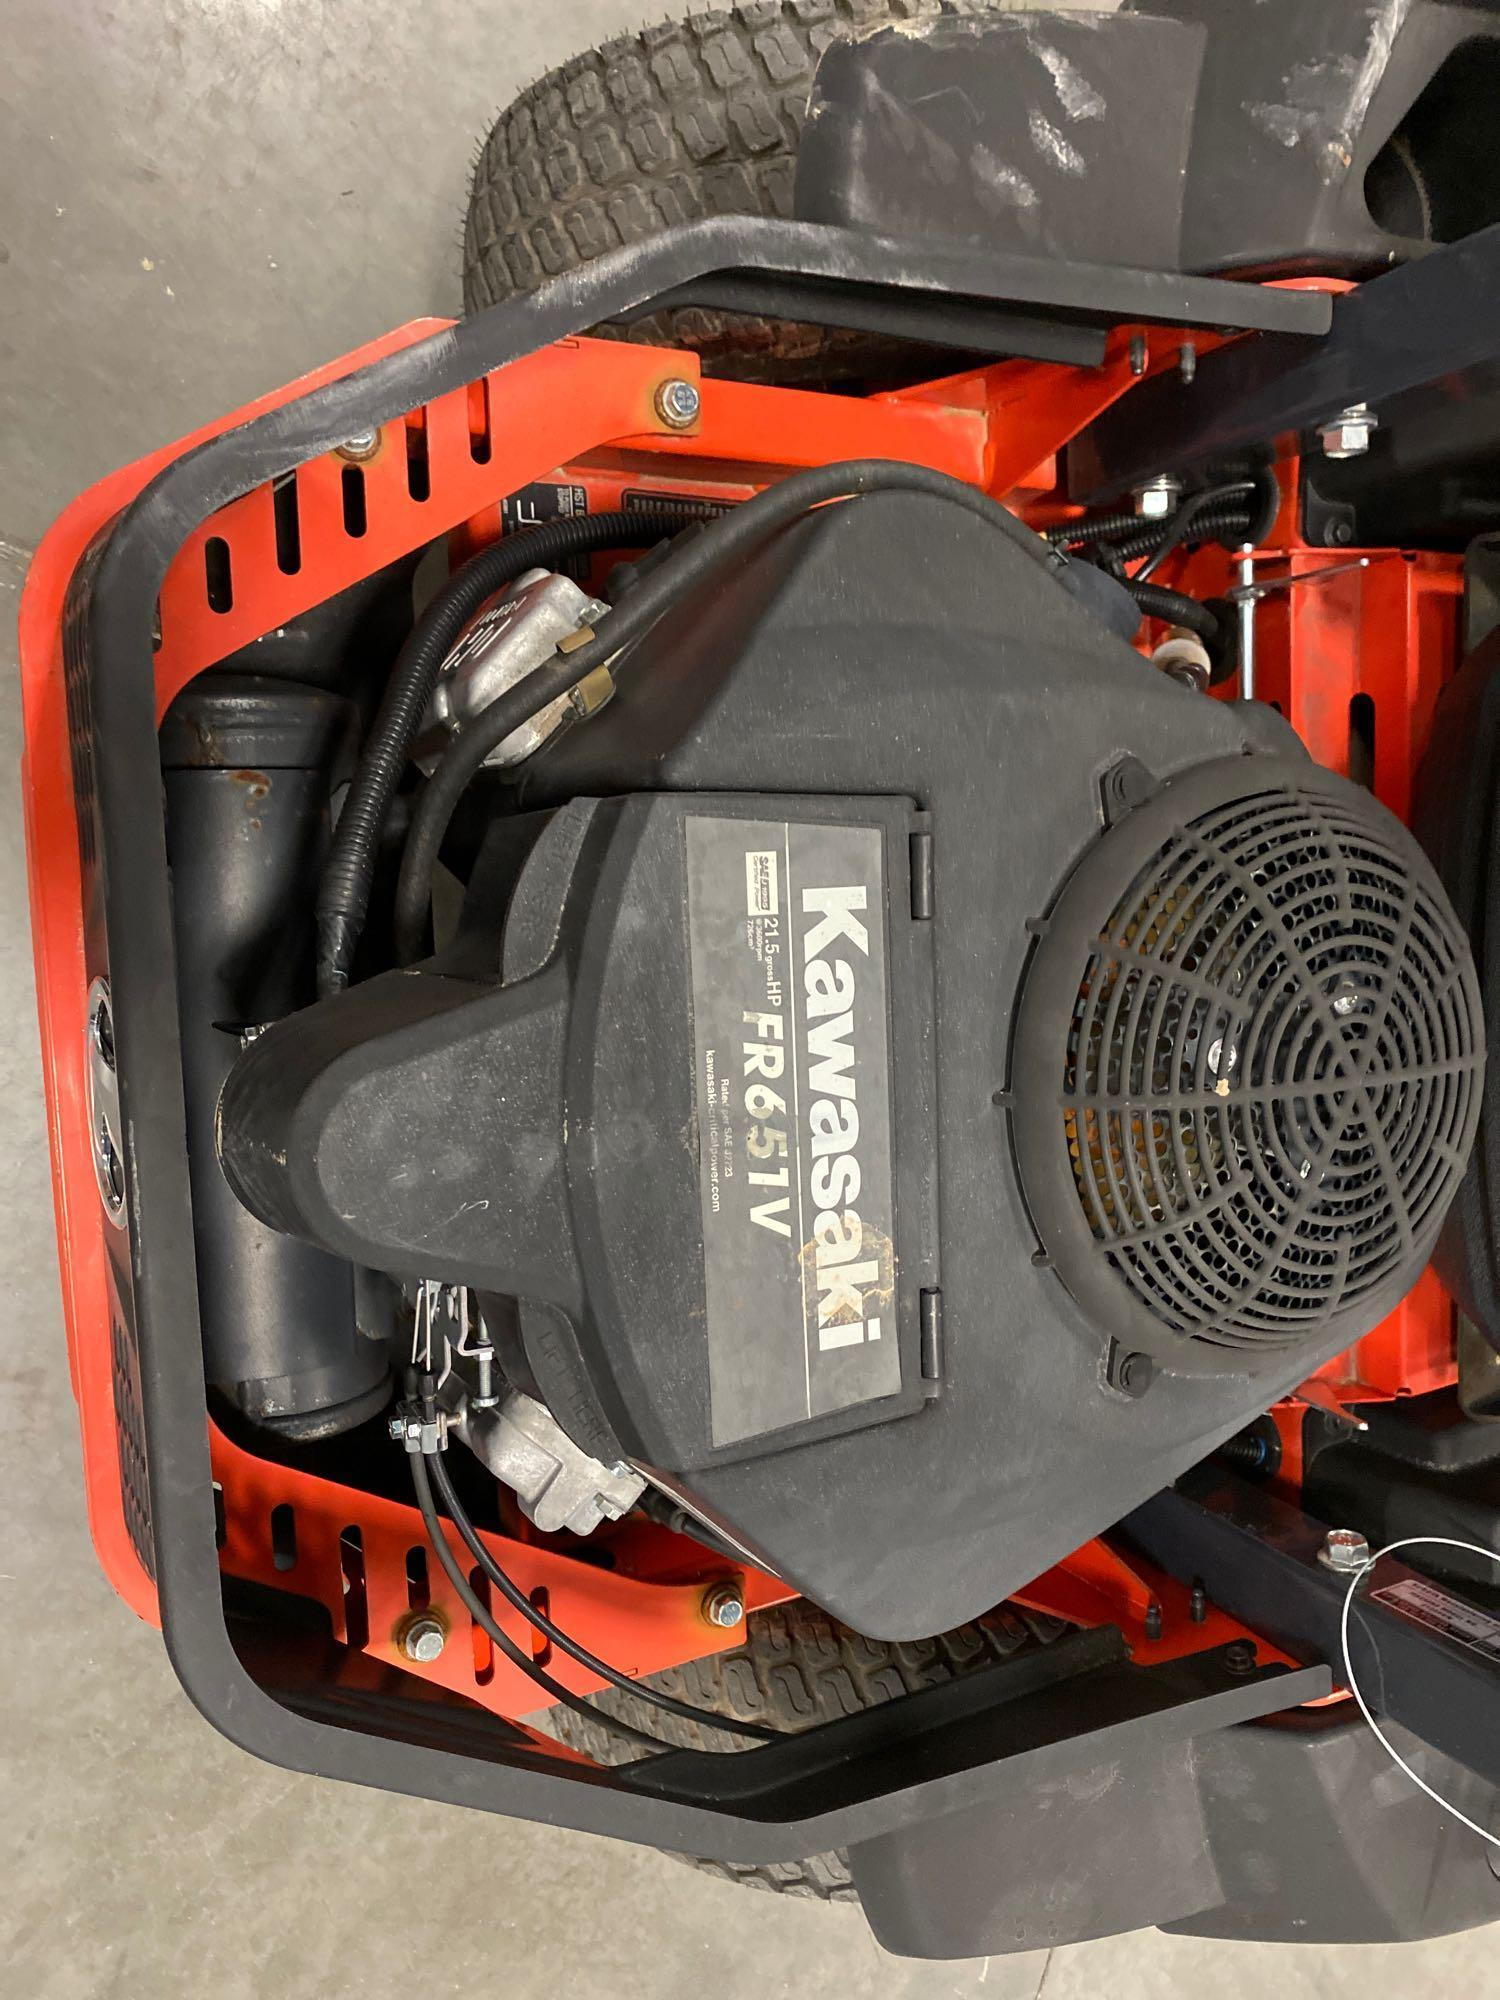 """2016 KUBOTA Z122RKW 42"""" RIDE ON MOWER, 3.9 HOURS SHOWING, RUNS AND OPERATES - Image 7 of 9"""